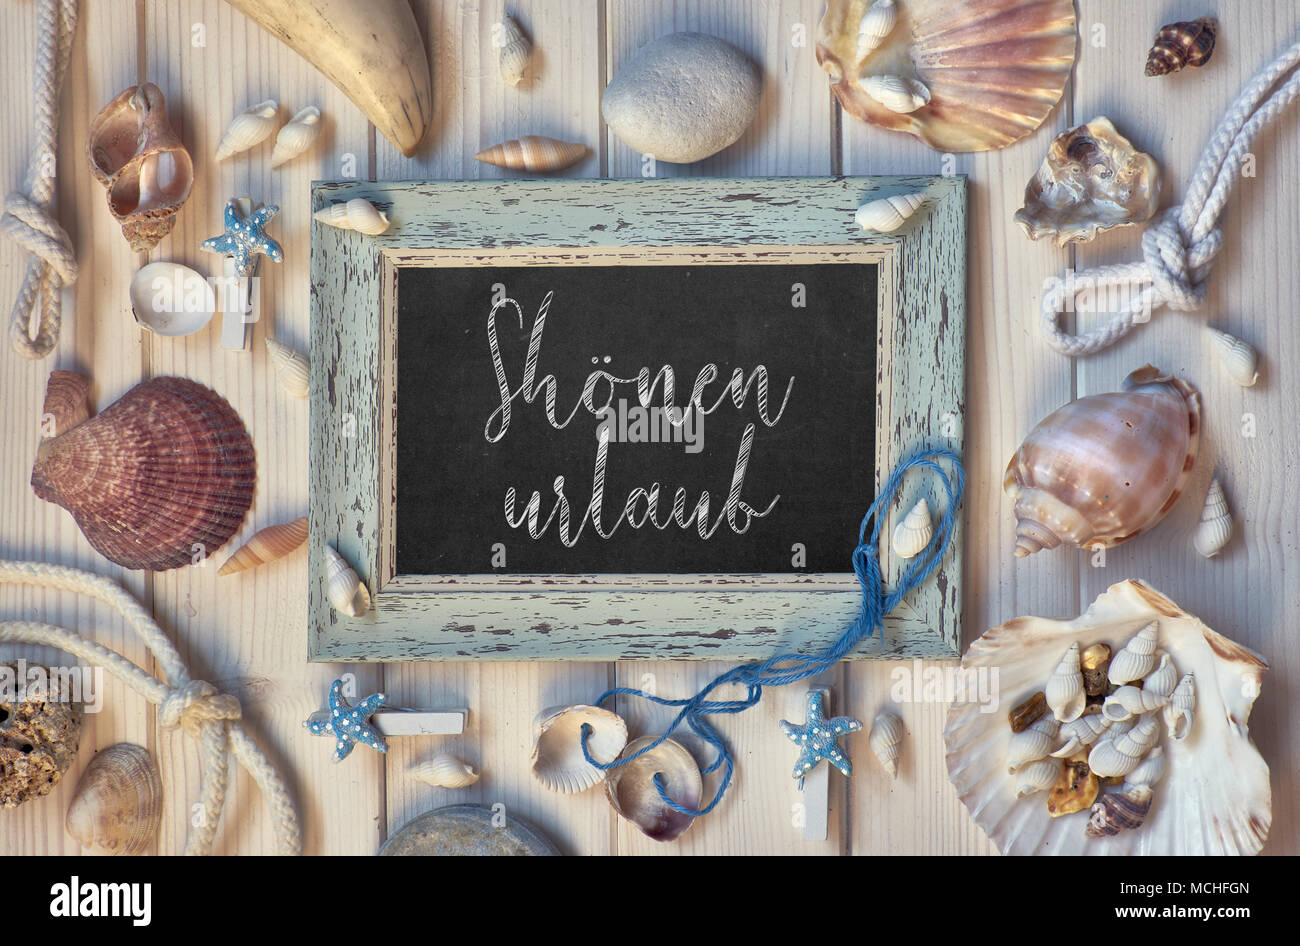 Blackboard With Maritime Decorations on light wood, text in German, 'Shonen urlaub' Means 'Happy holidays' - Stock Image